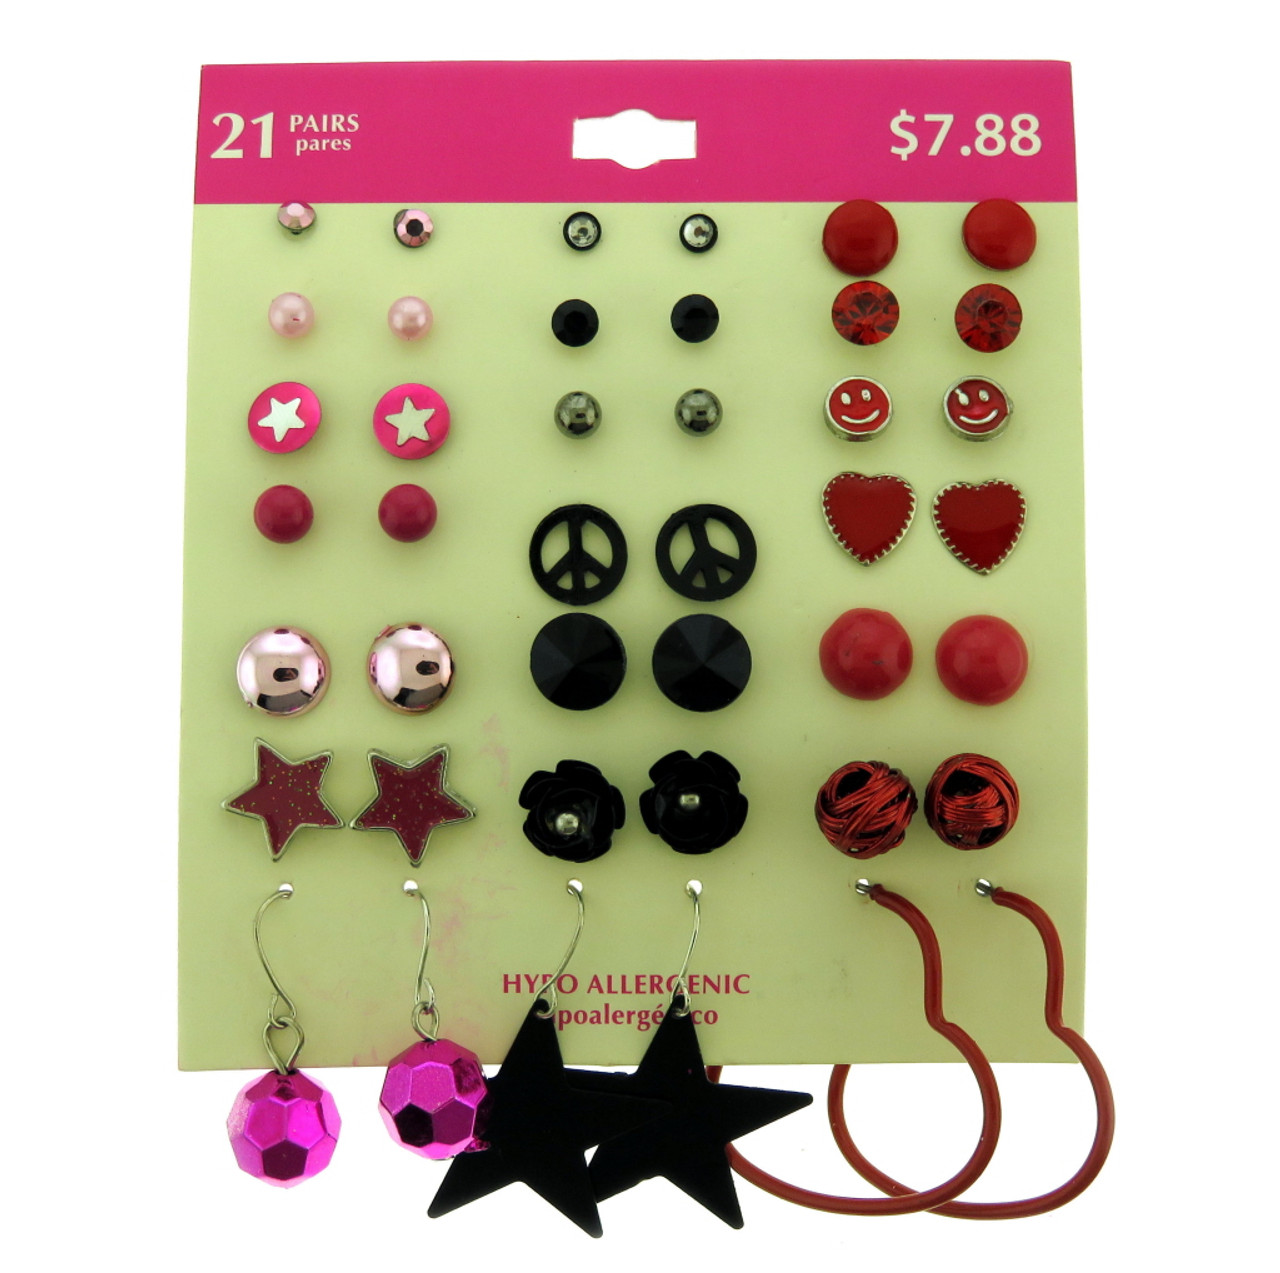 Set of 21 pairs of hypo allergenic earrings all are studs besides the three pairs in the bottom row ppme393